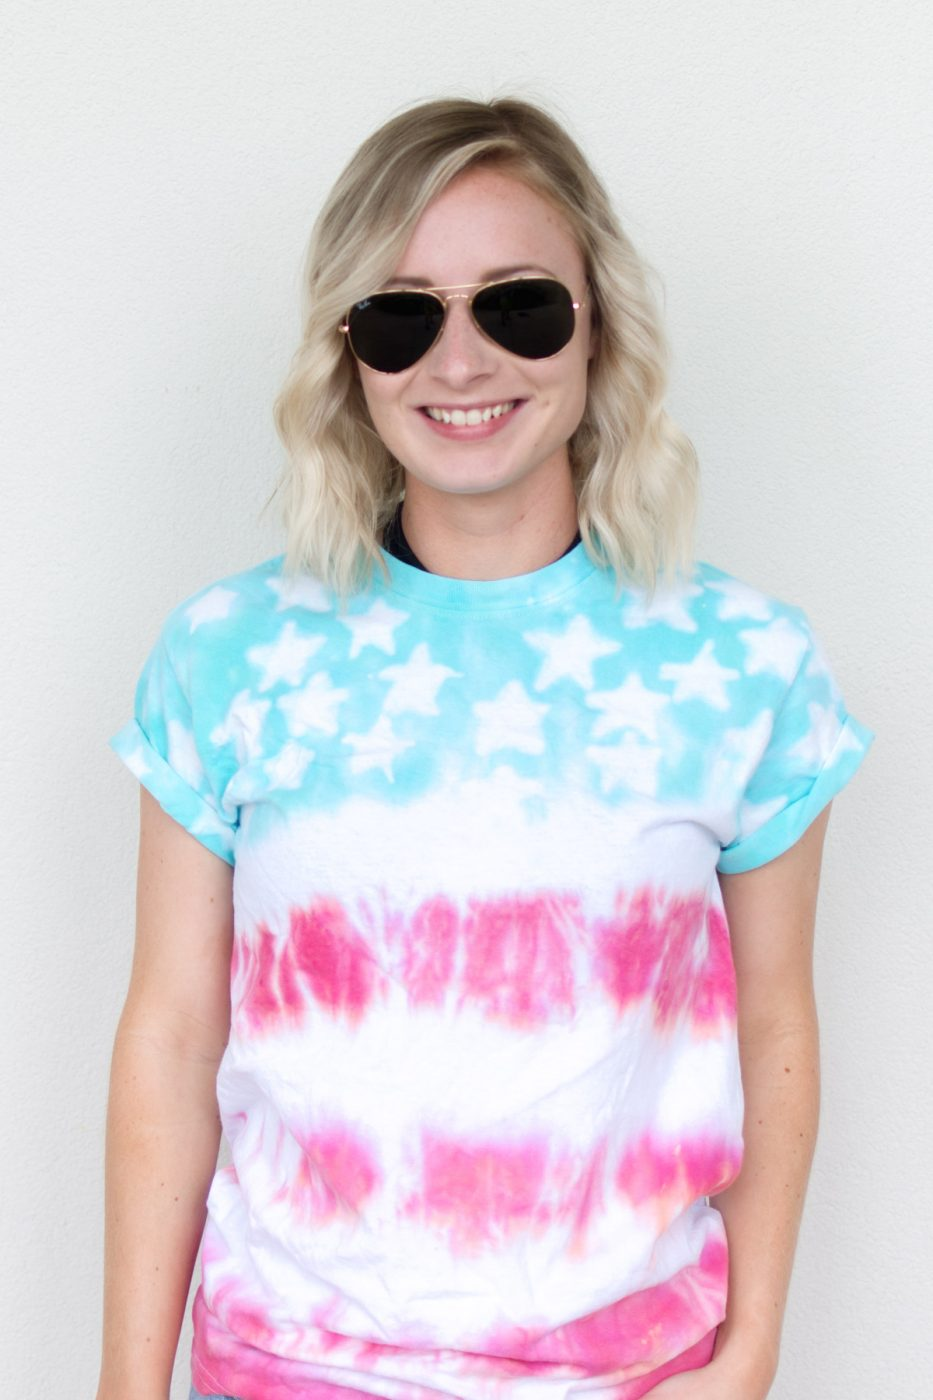 DIY American Flag Tie Dye Shirt by Jenny Bess of Sweet Teal